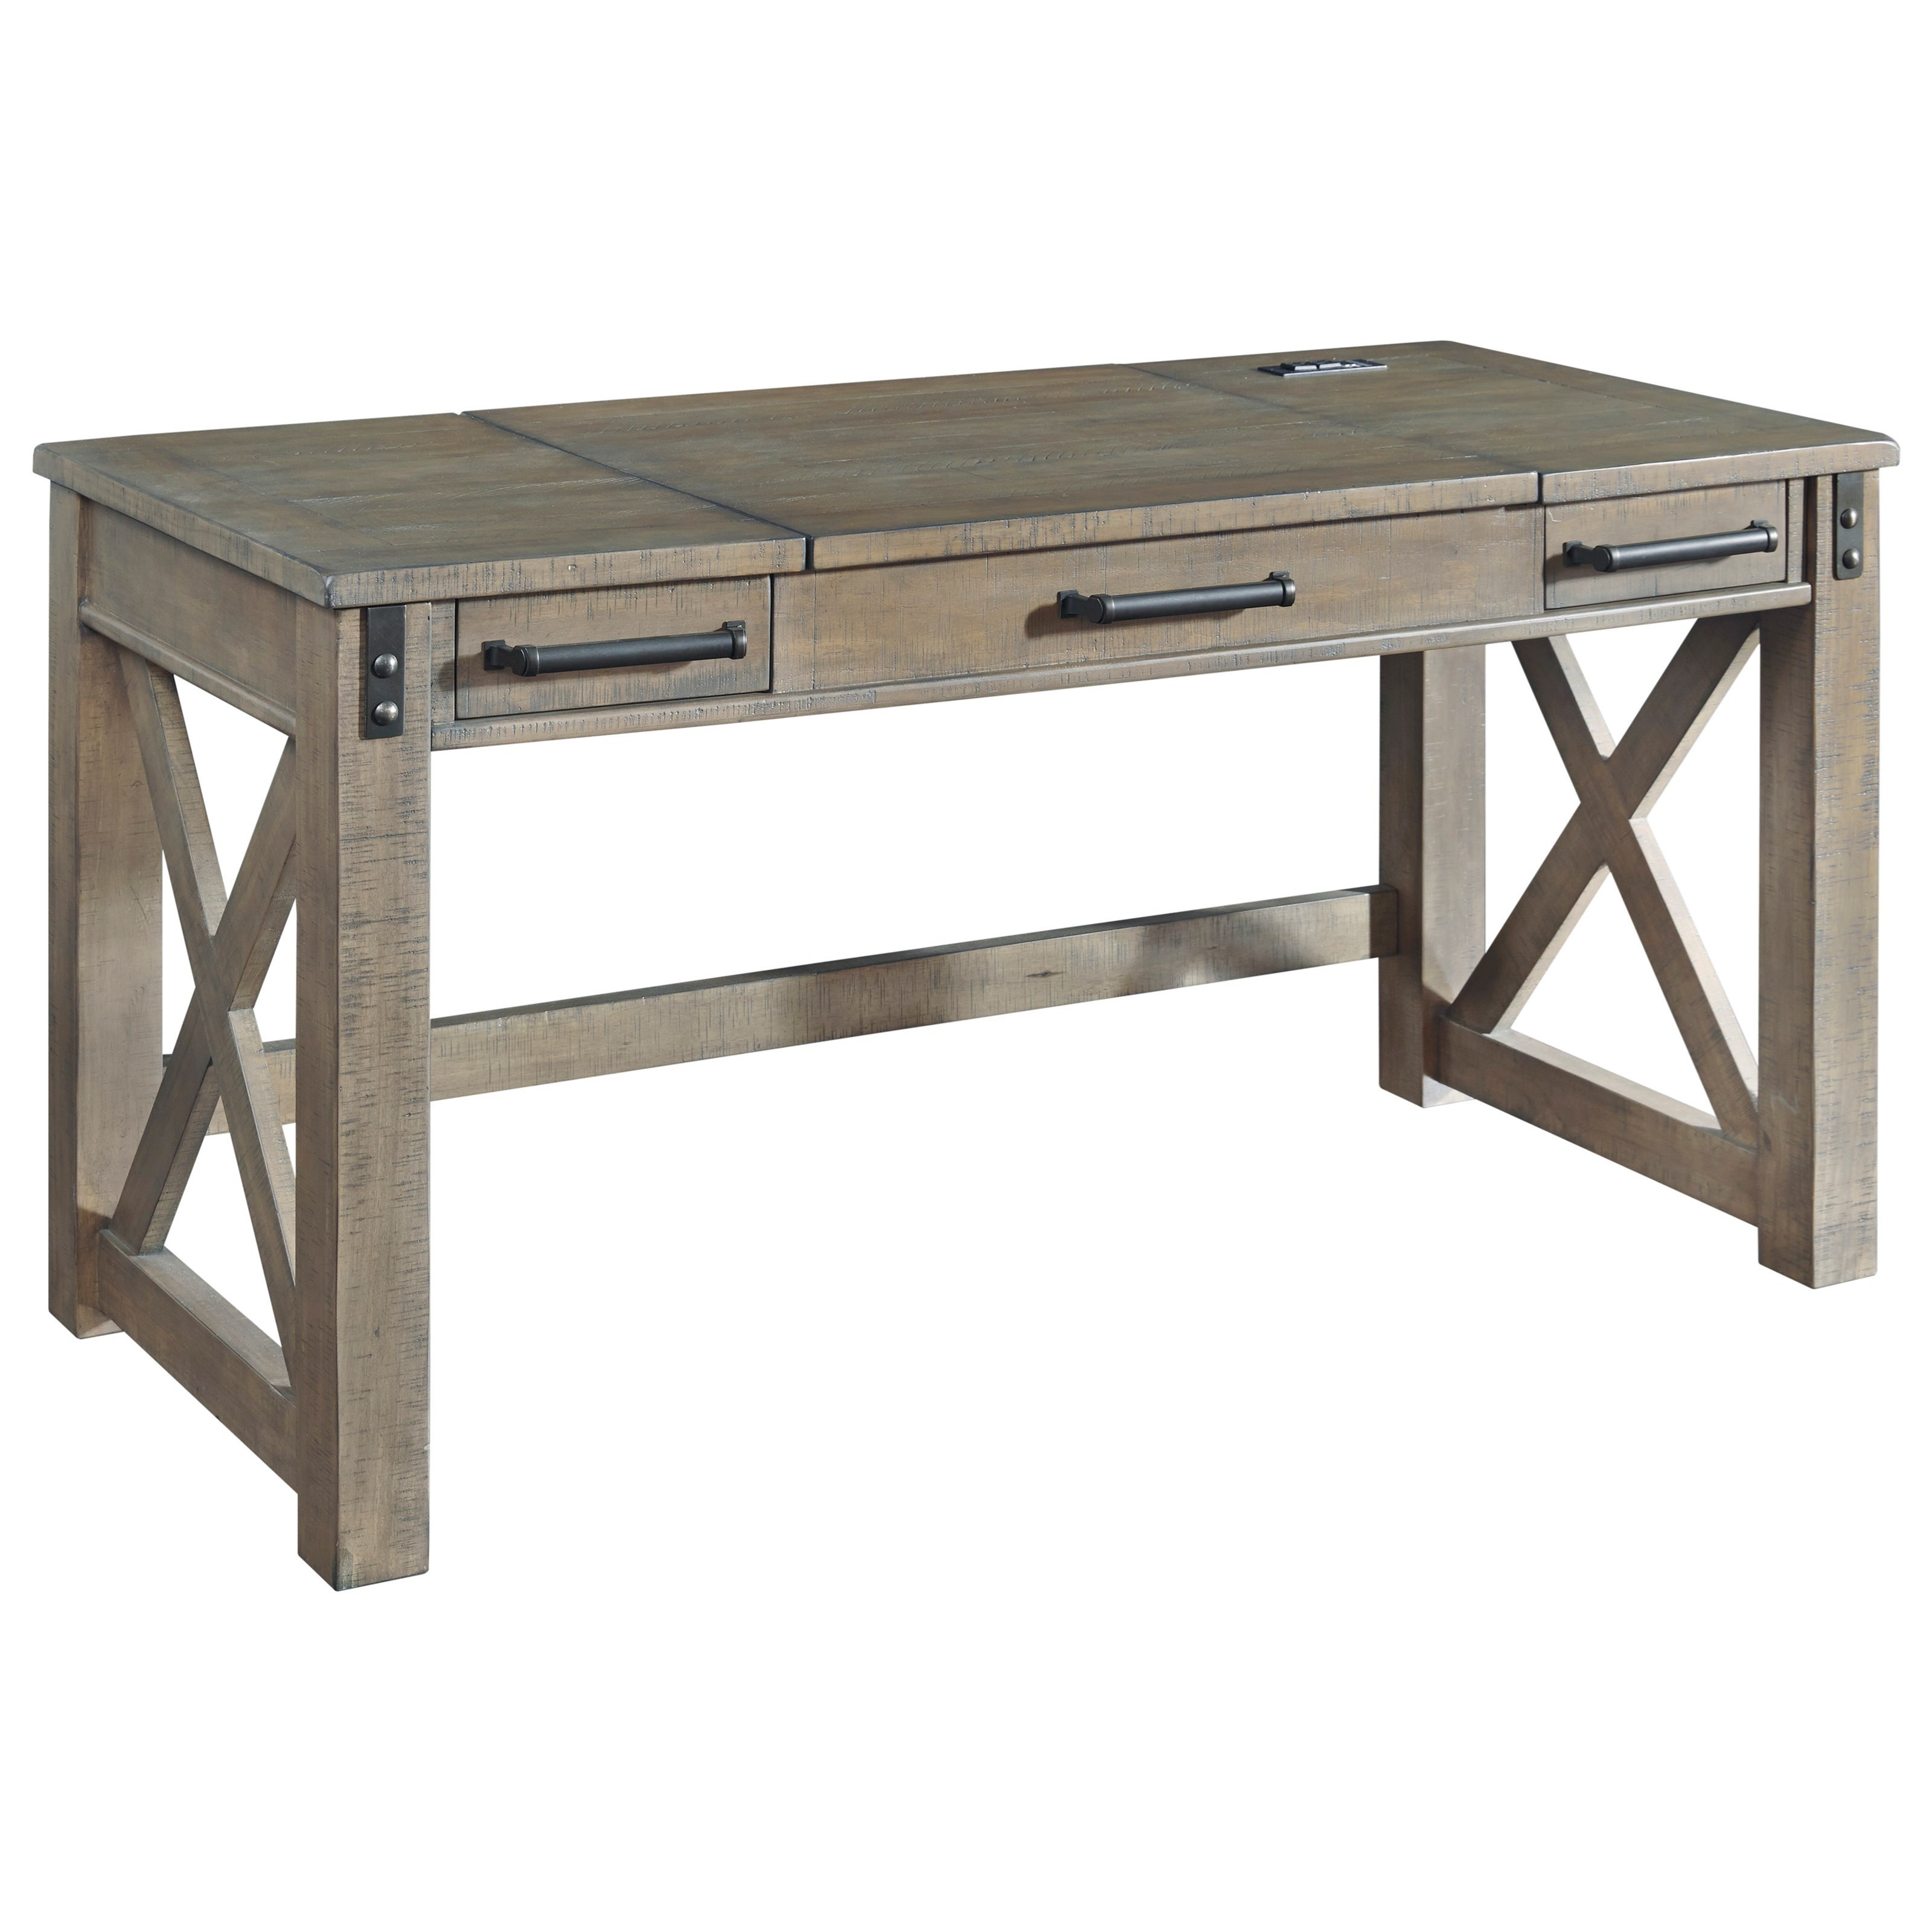 Aldwin Home Office Lift Top Desk by Vendor 3 at Becker Furniture